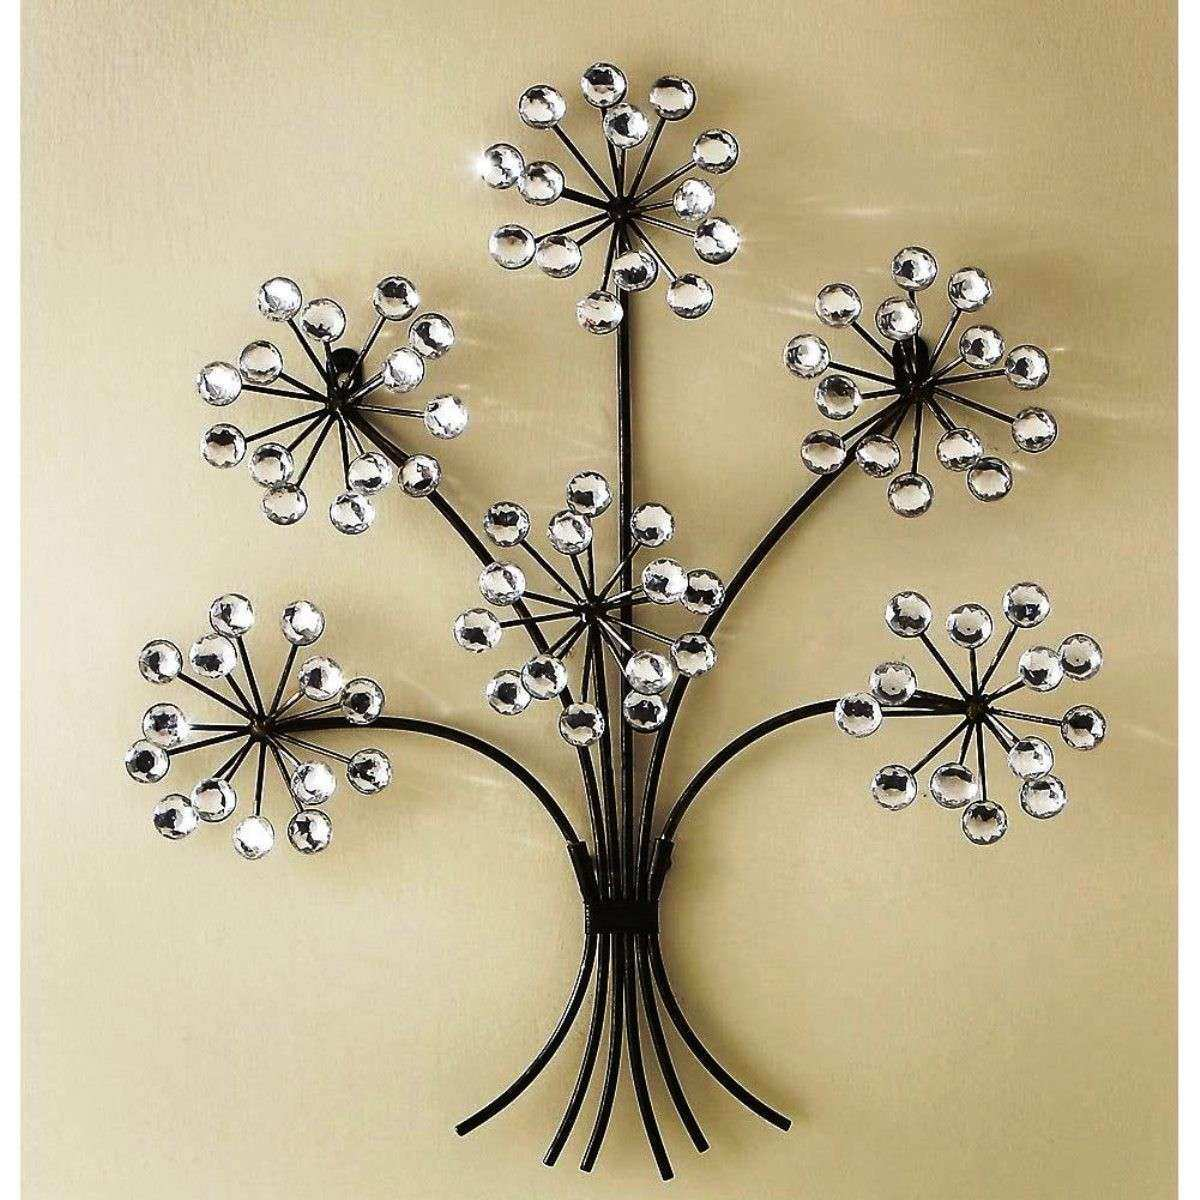 Wall Decor Metal Inspirational Beautiful Metal Wall Art Decor for ...